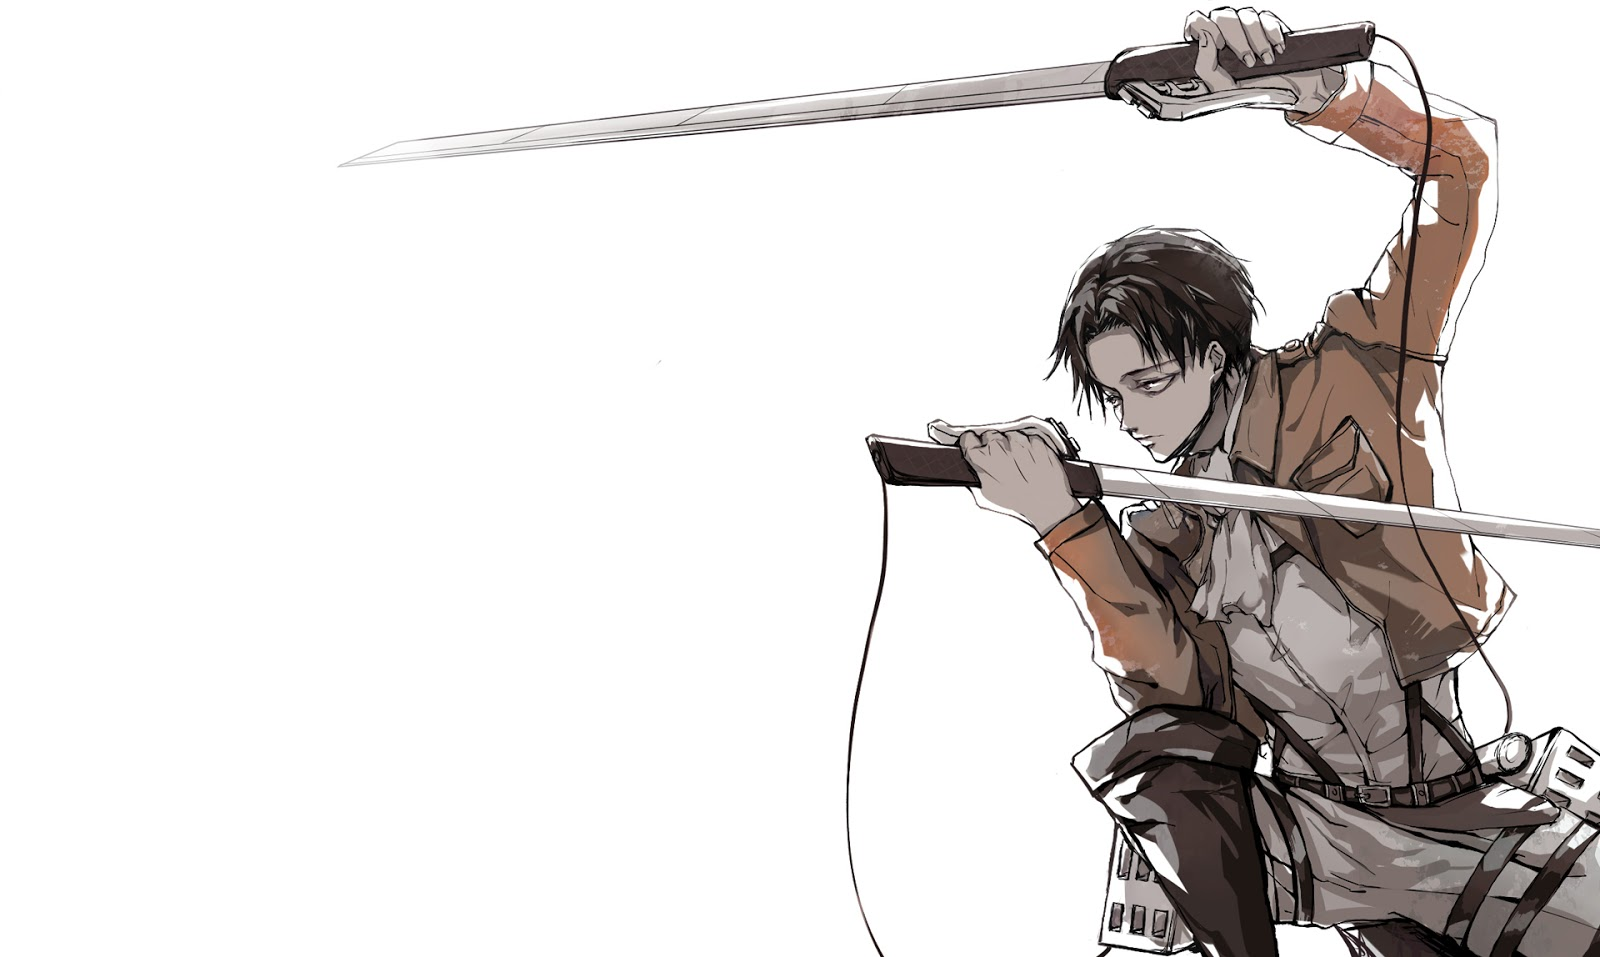 Attack on Titan Shingeki no Kyojin Levi Rivaille Anime Blade Sword HD 1600x957